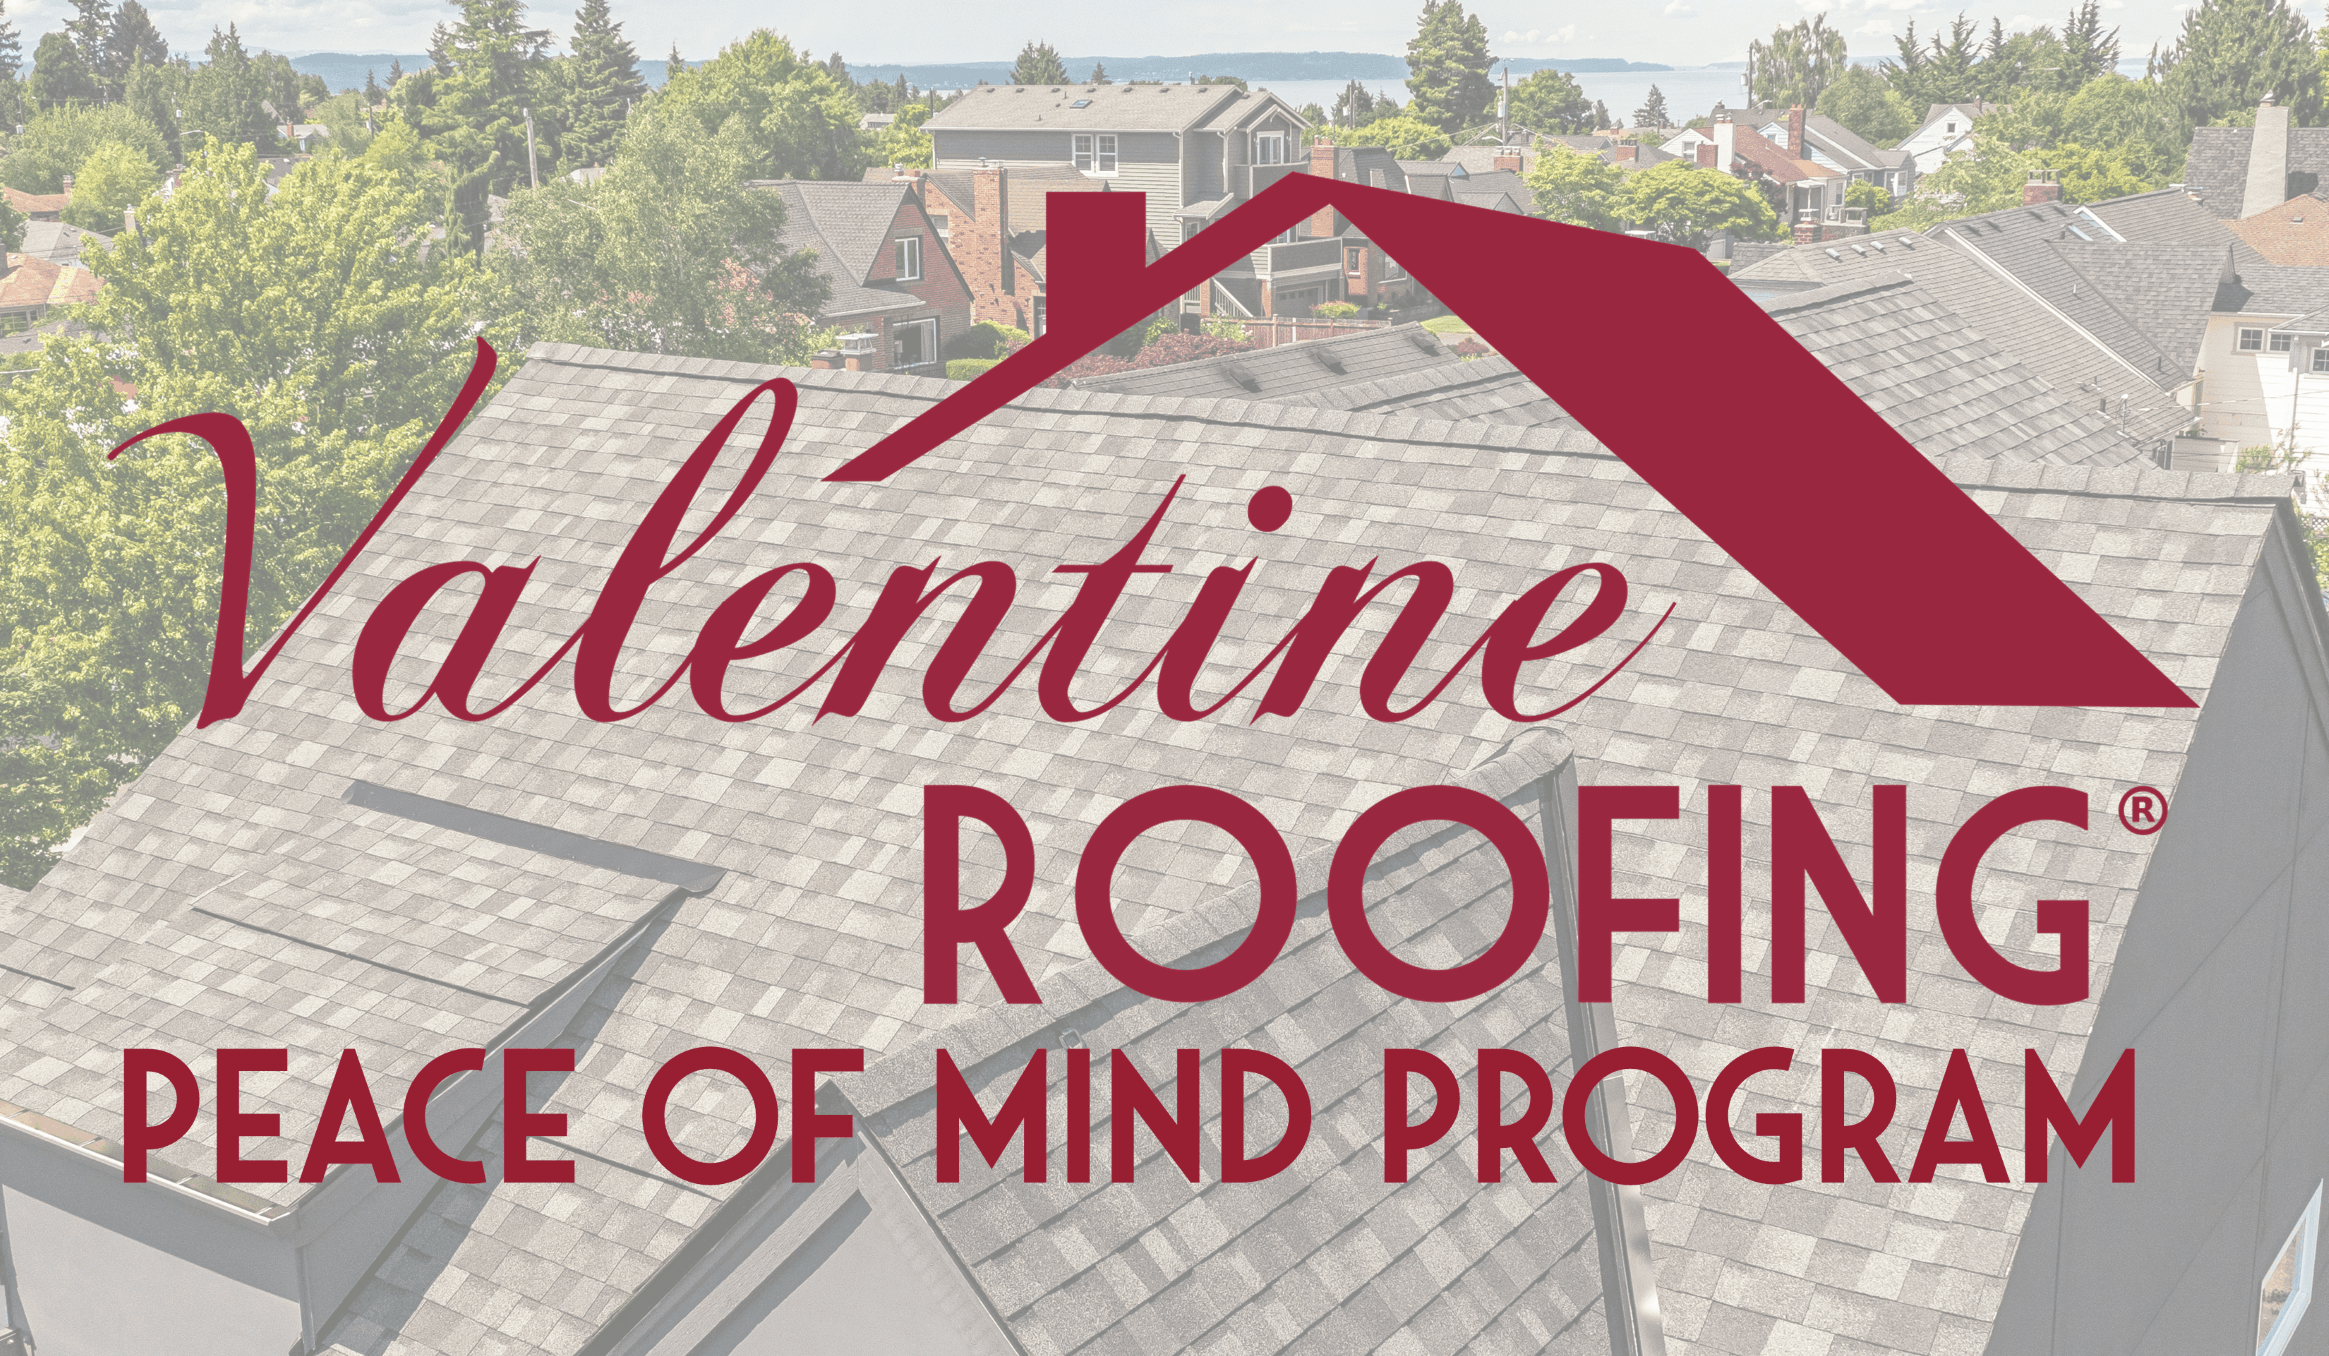 Valentine Roofing Peace of Mind